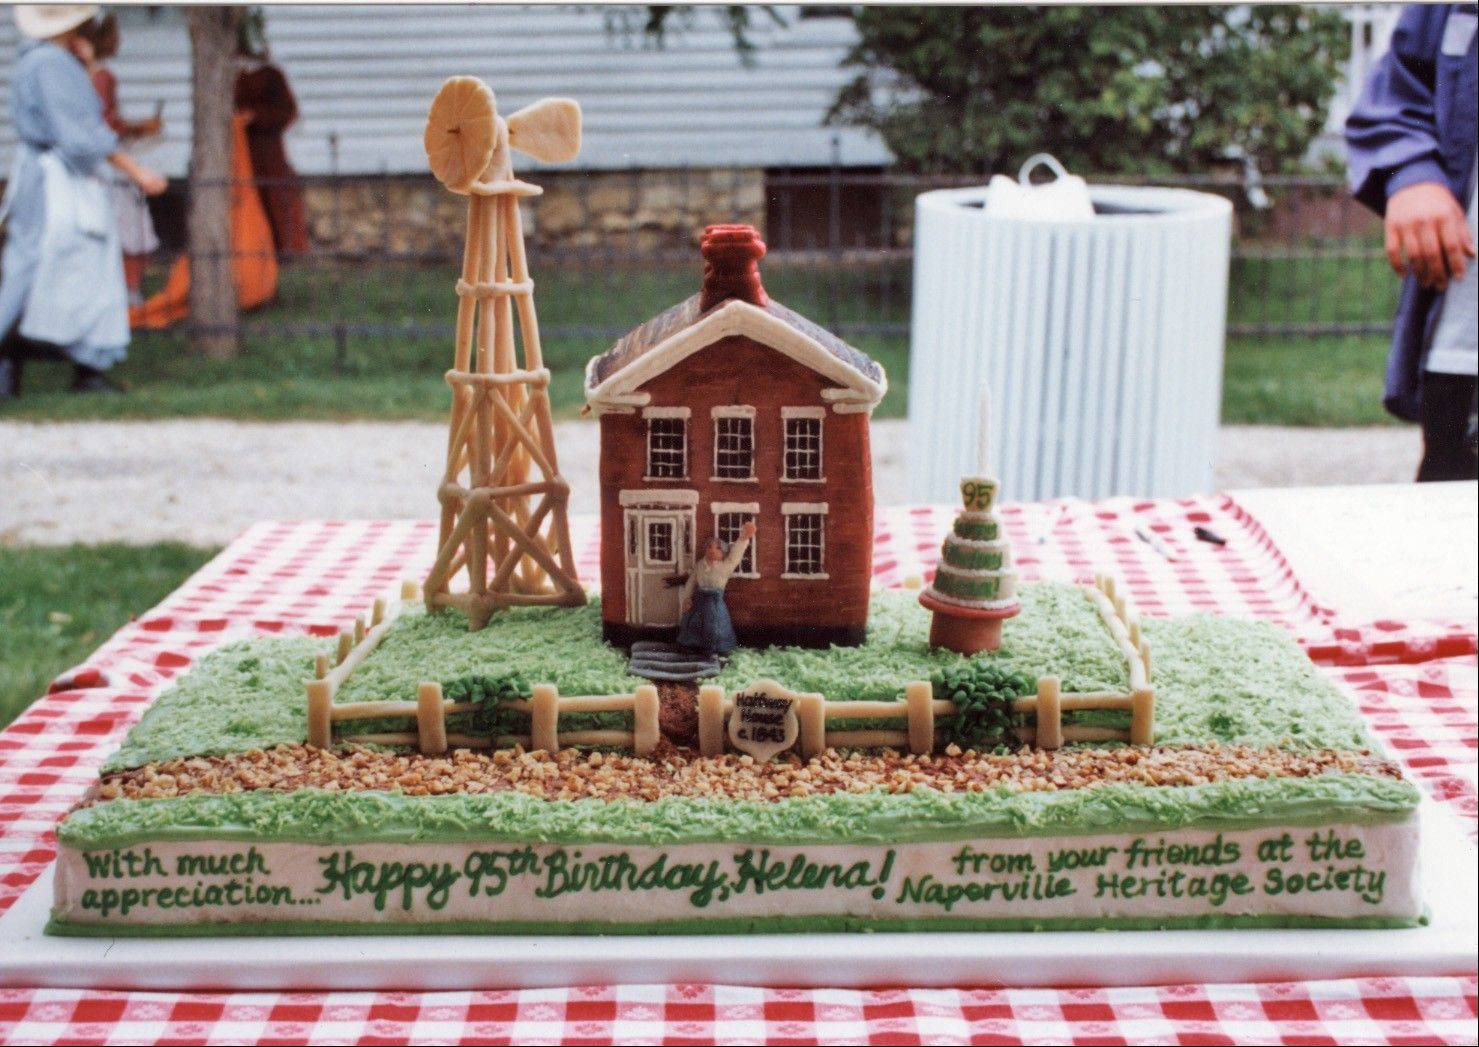 Stephanie Penick made this cake in 1993 to celebrate the 95th birthday of Naper Settlement volunteer Helena Wackerlin.